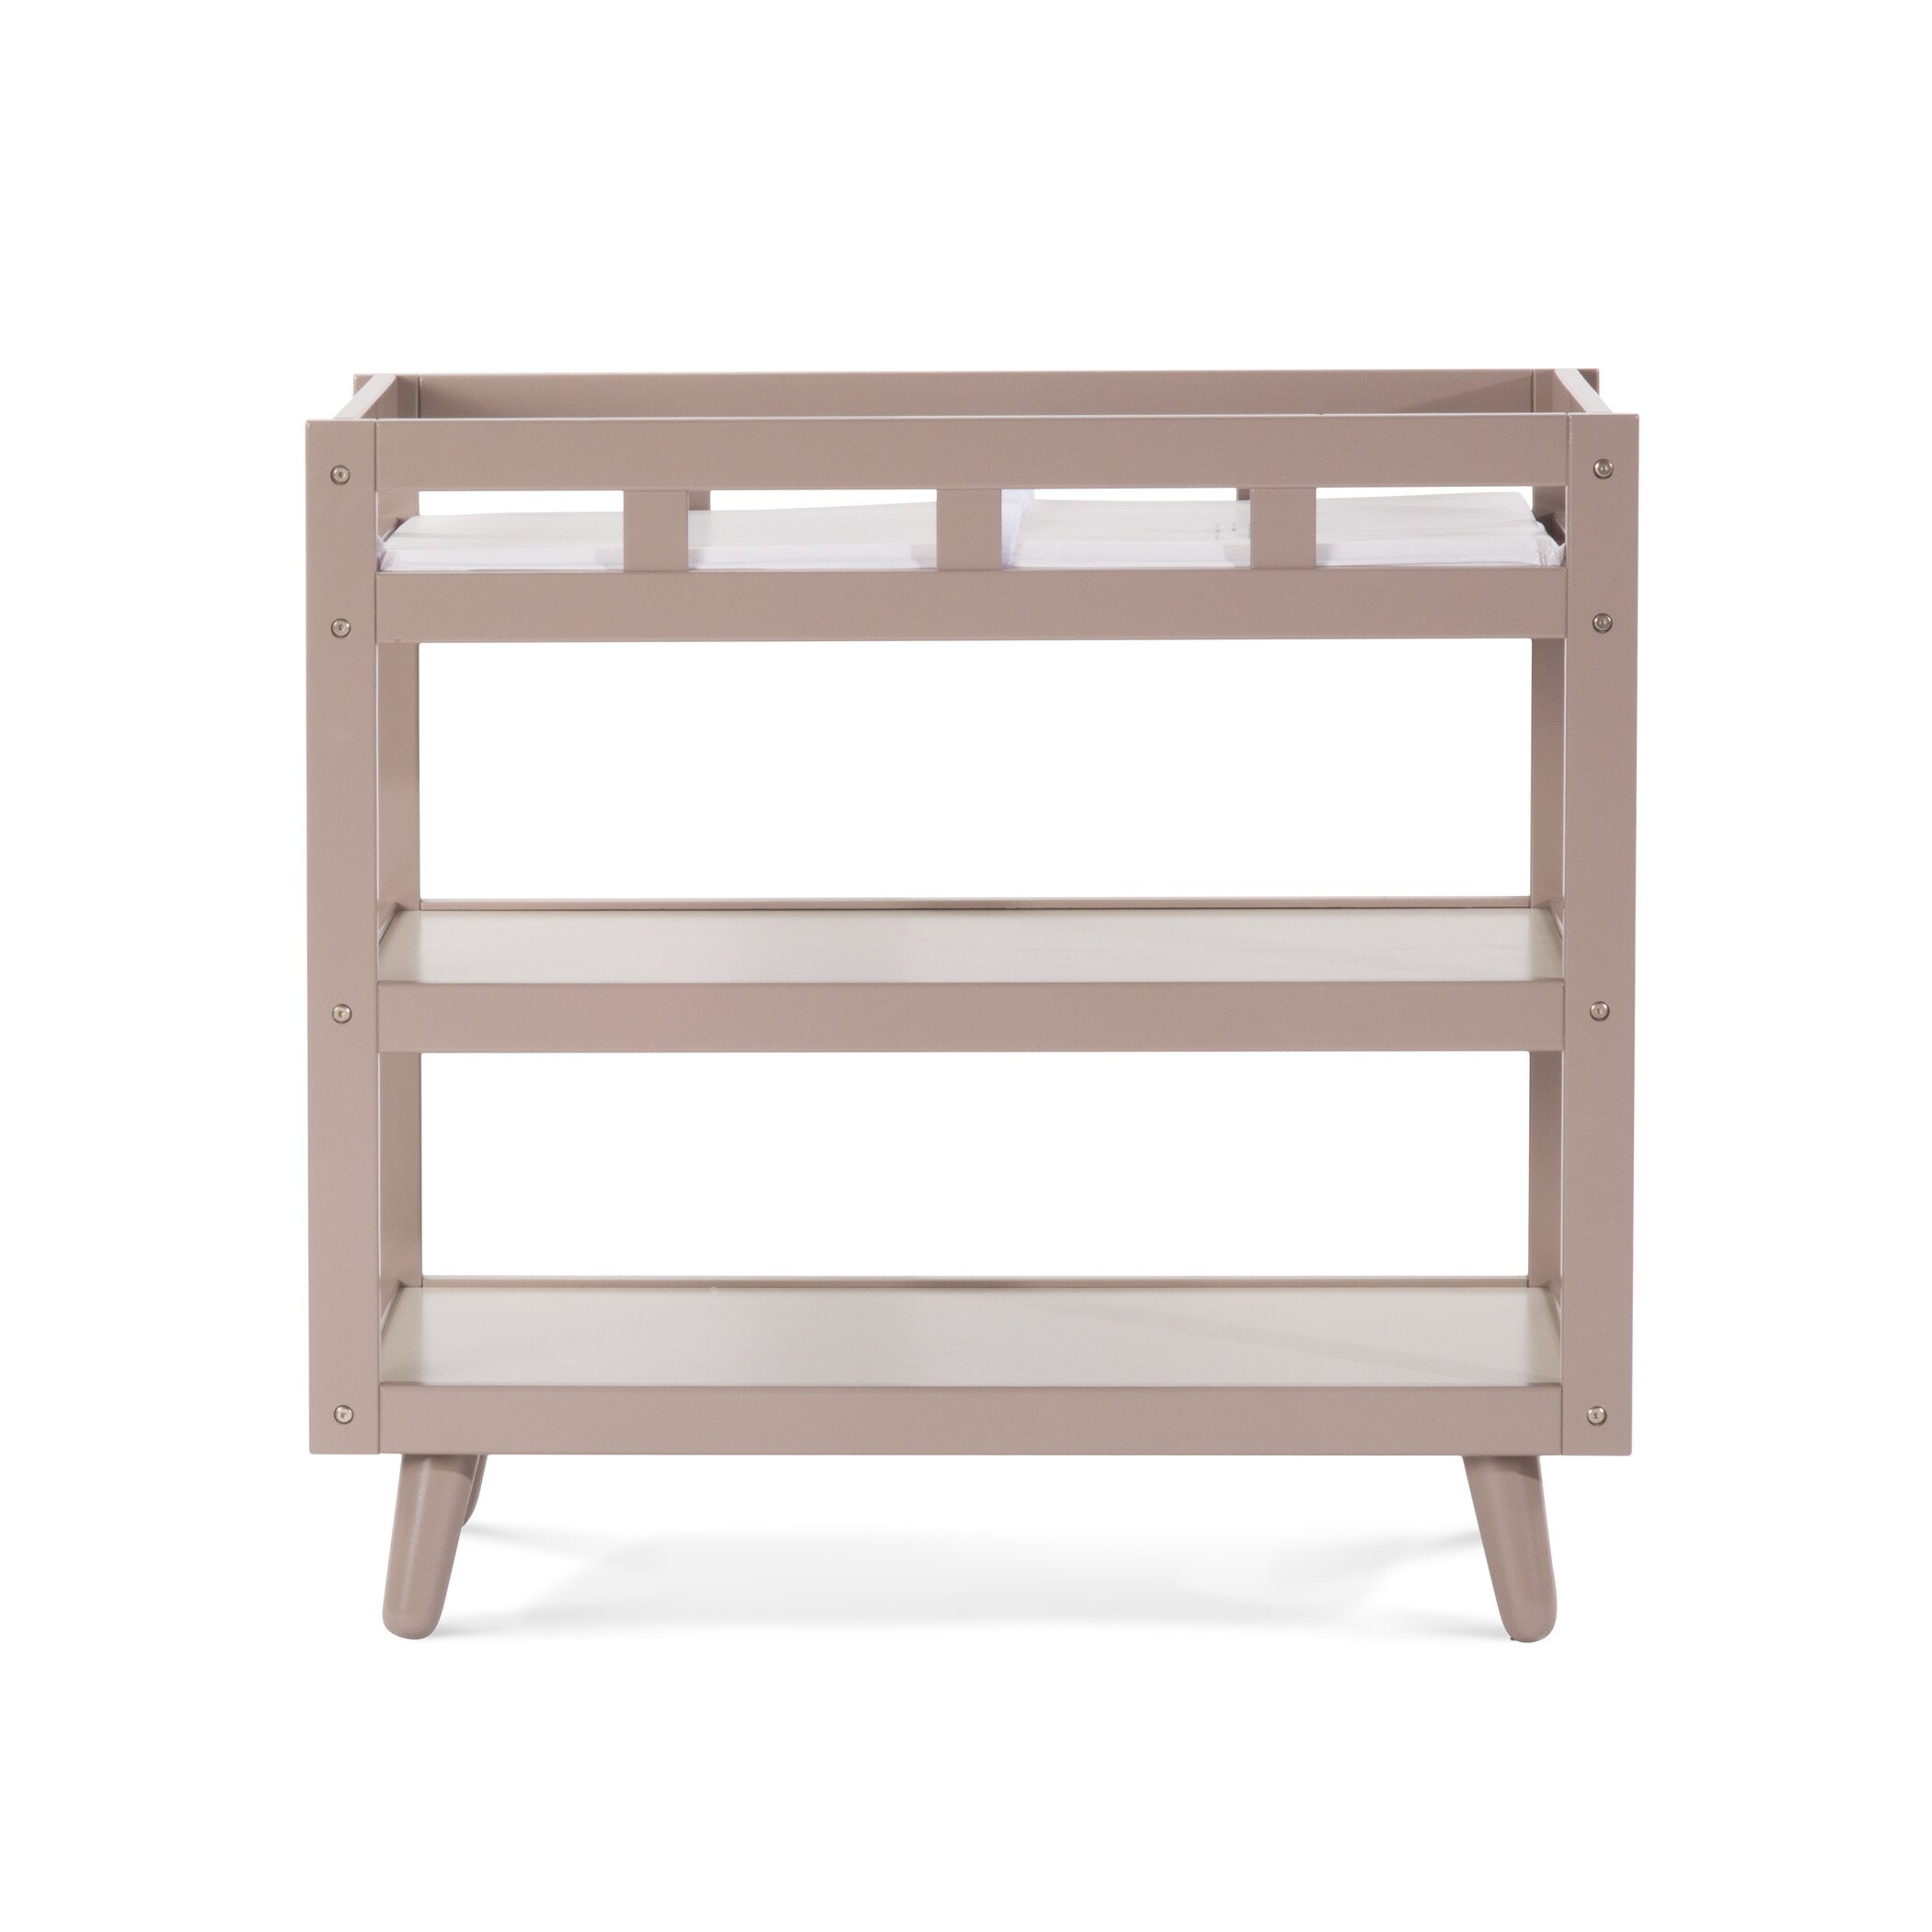 Child craft loft changing table wayfair for Child craft changing table